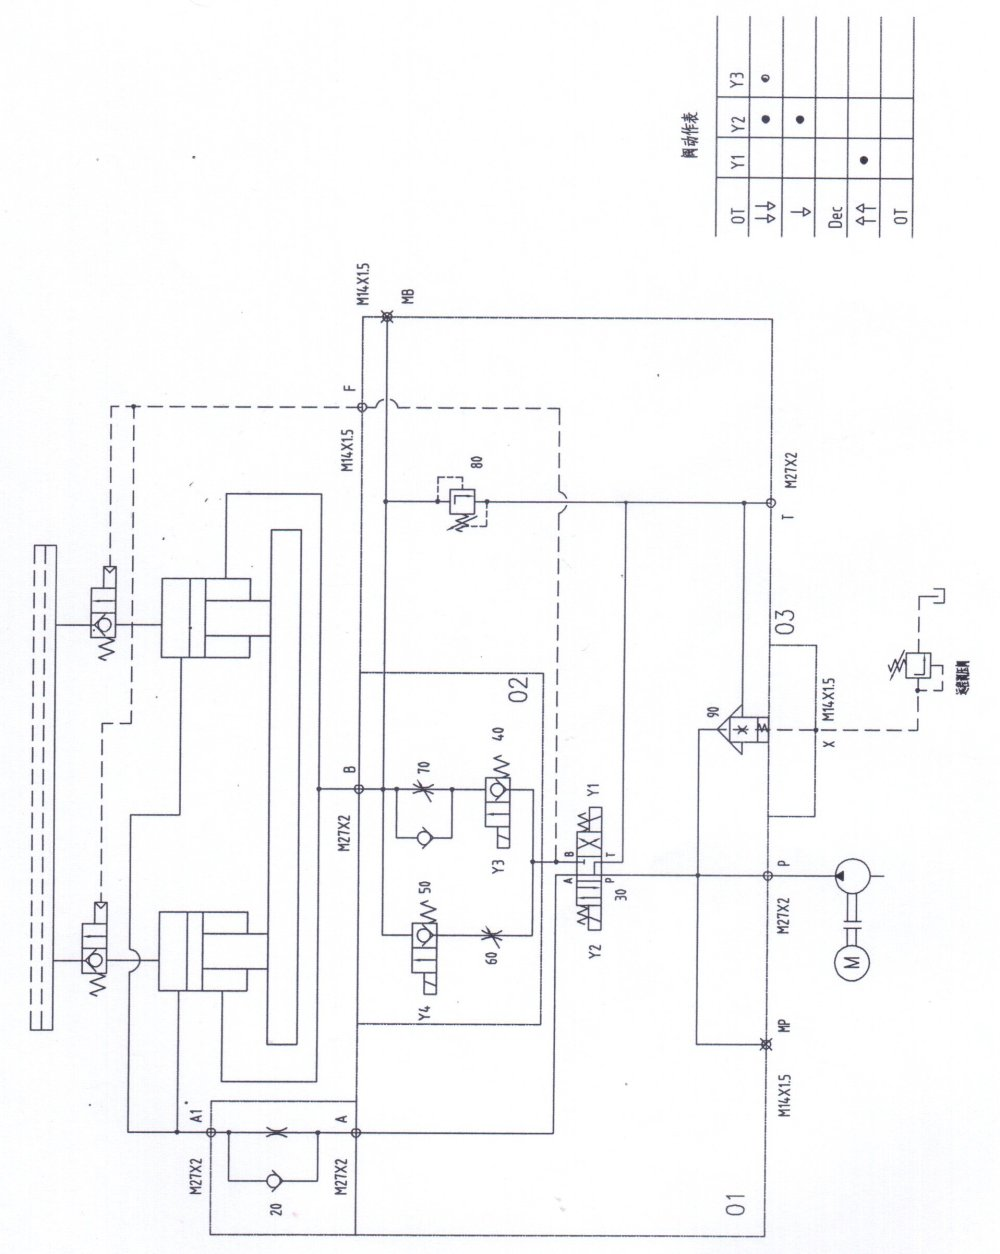 medium resolution of limit switch wiring diagram hydraulic ram wiring library square d limit switch diagram limit switch wiring